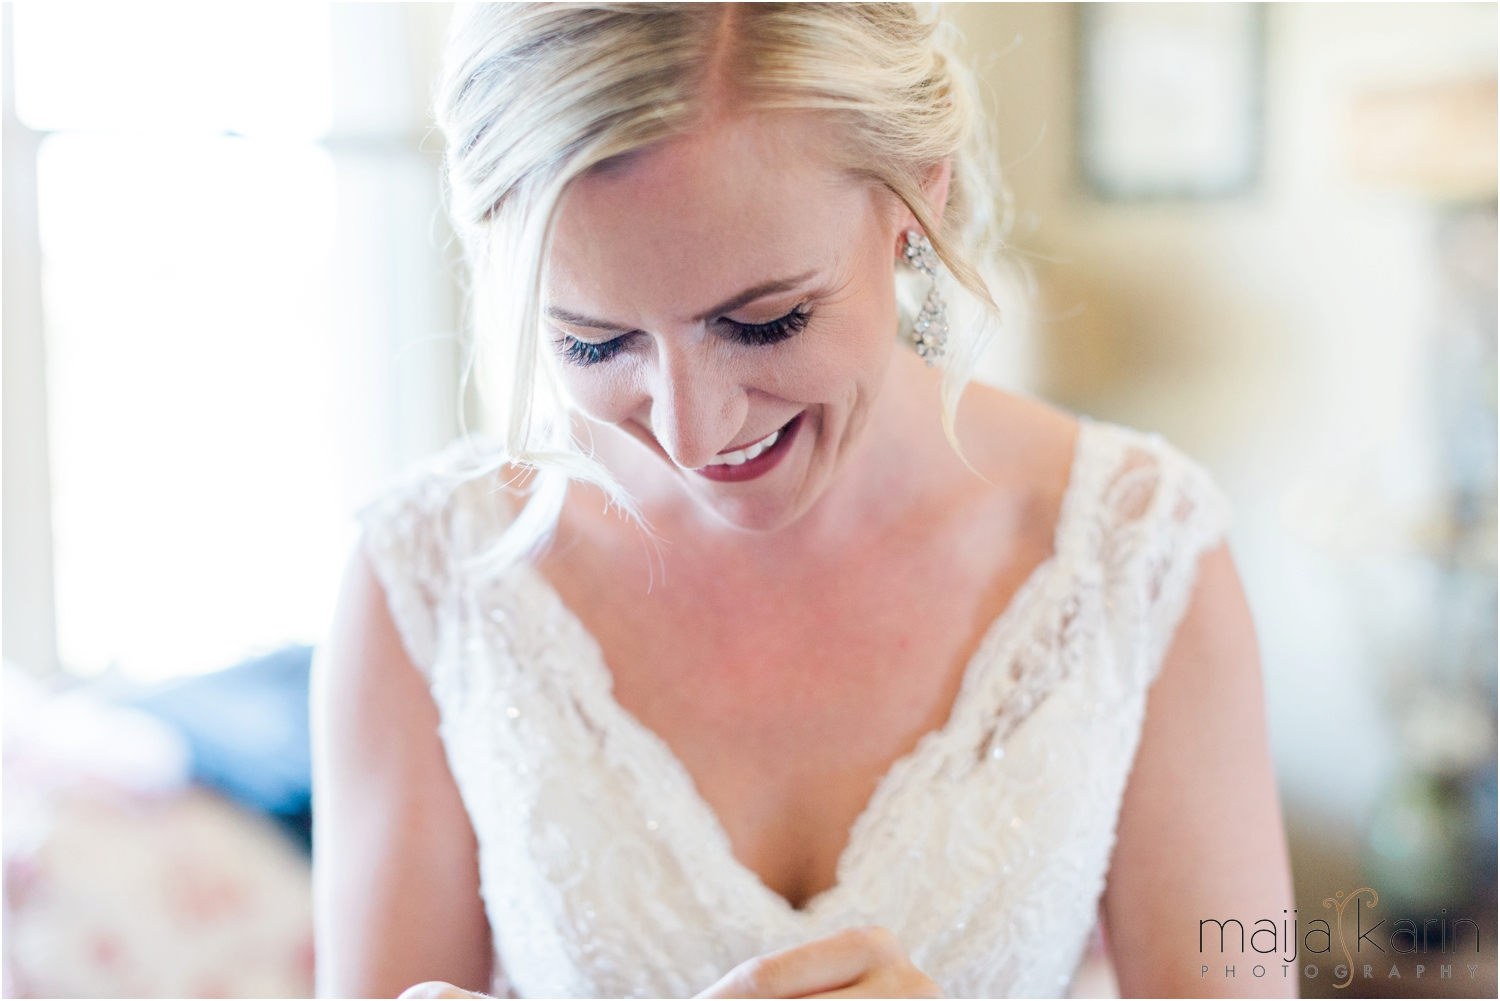 McCall-Idaho-Wedding-Maija-Karin-Photography_0007.jpg